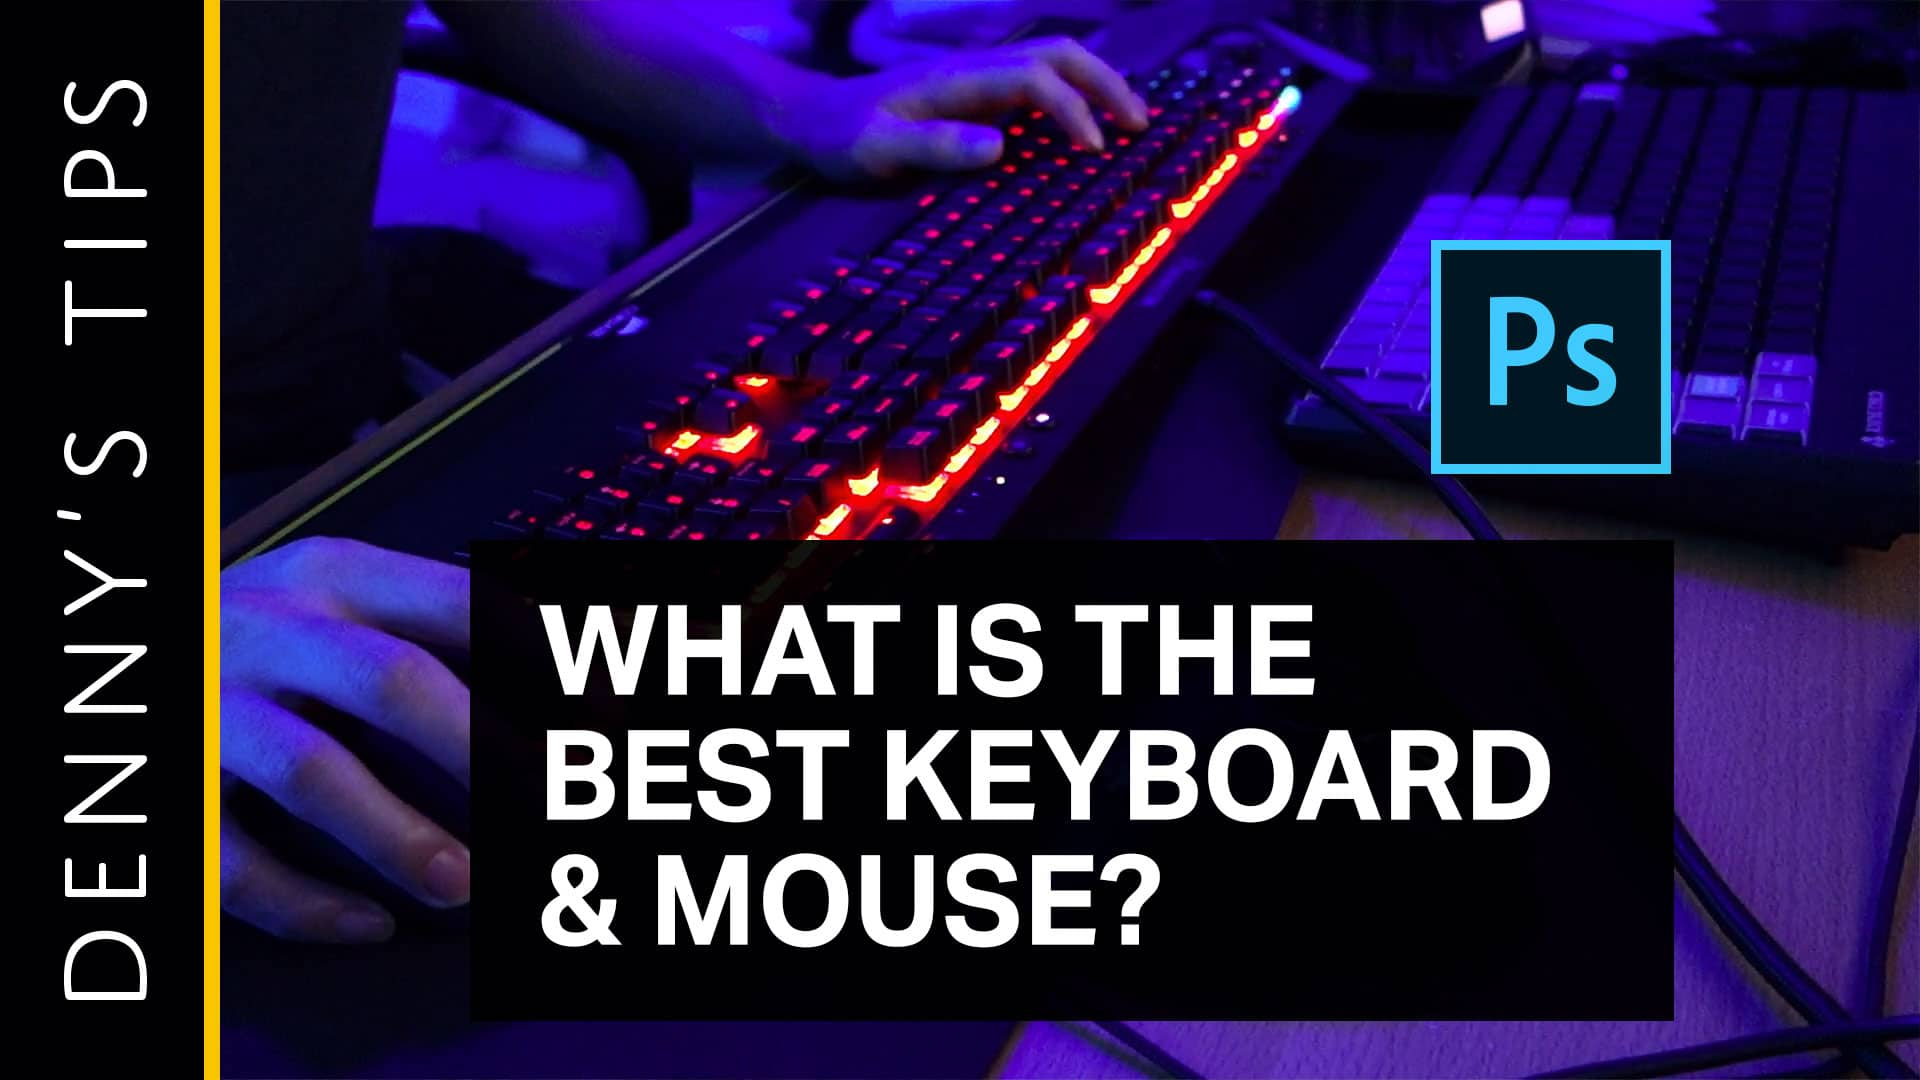 The Best Keyboard and Mouse for Photoshop - Denny's Tips